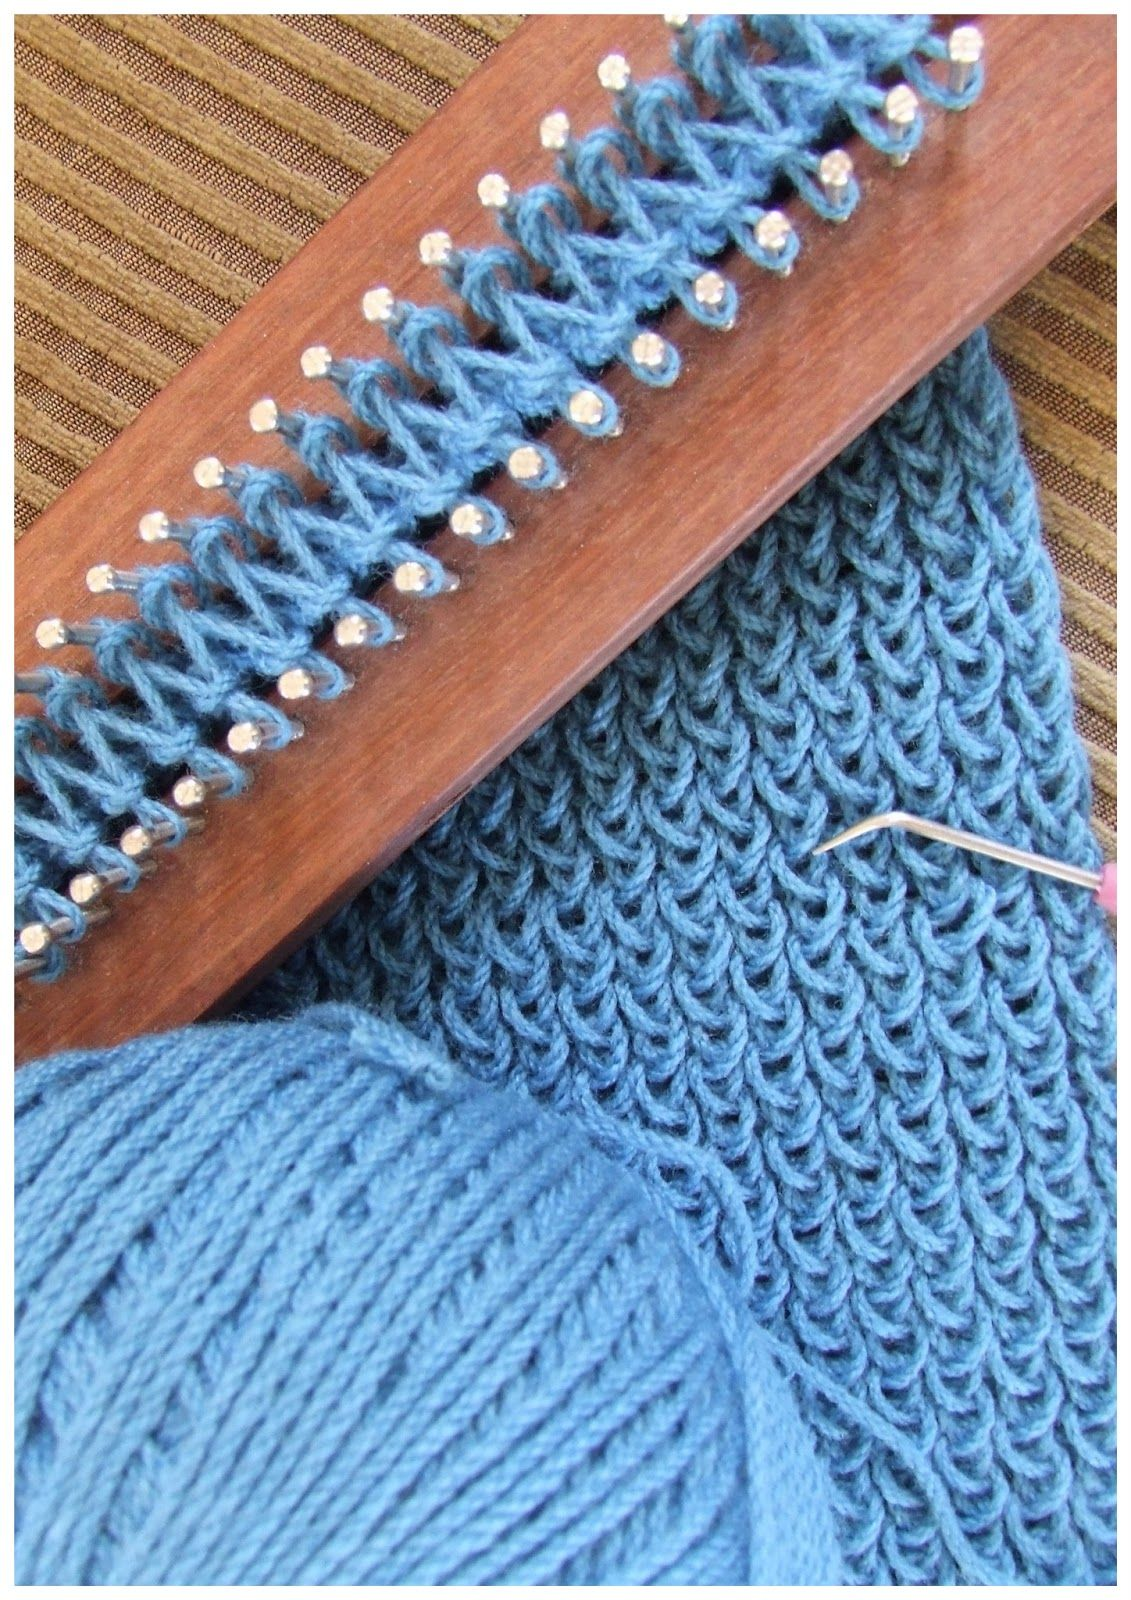 Knitting Loom Scarf : Fitzbirch crafts loom knitting patterns my dad made one